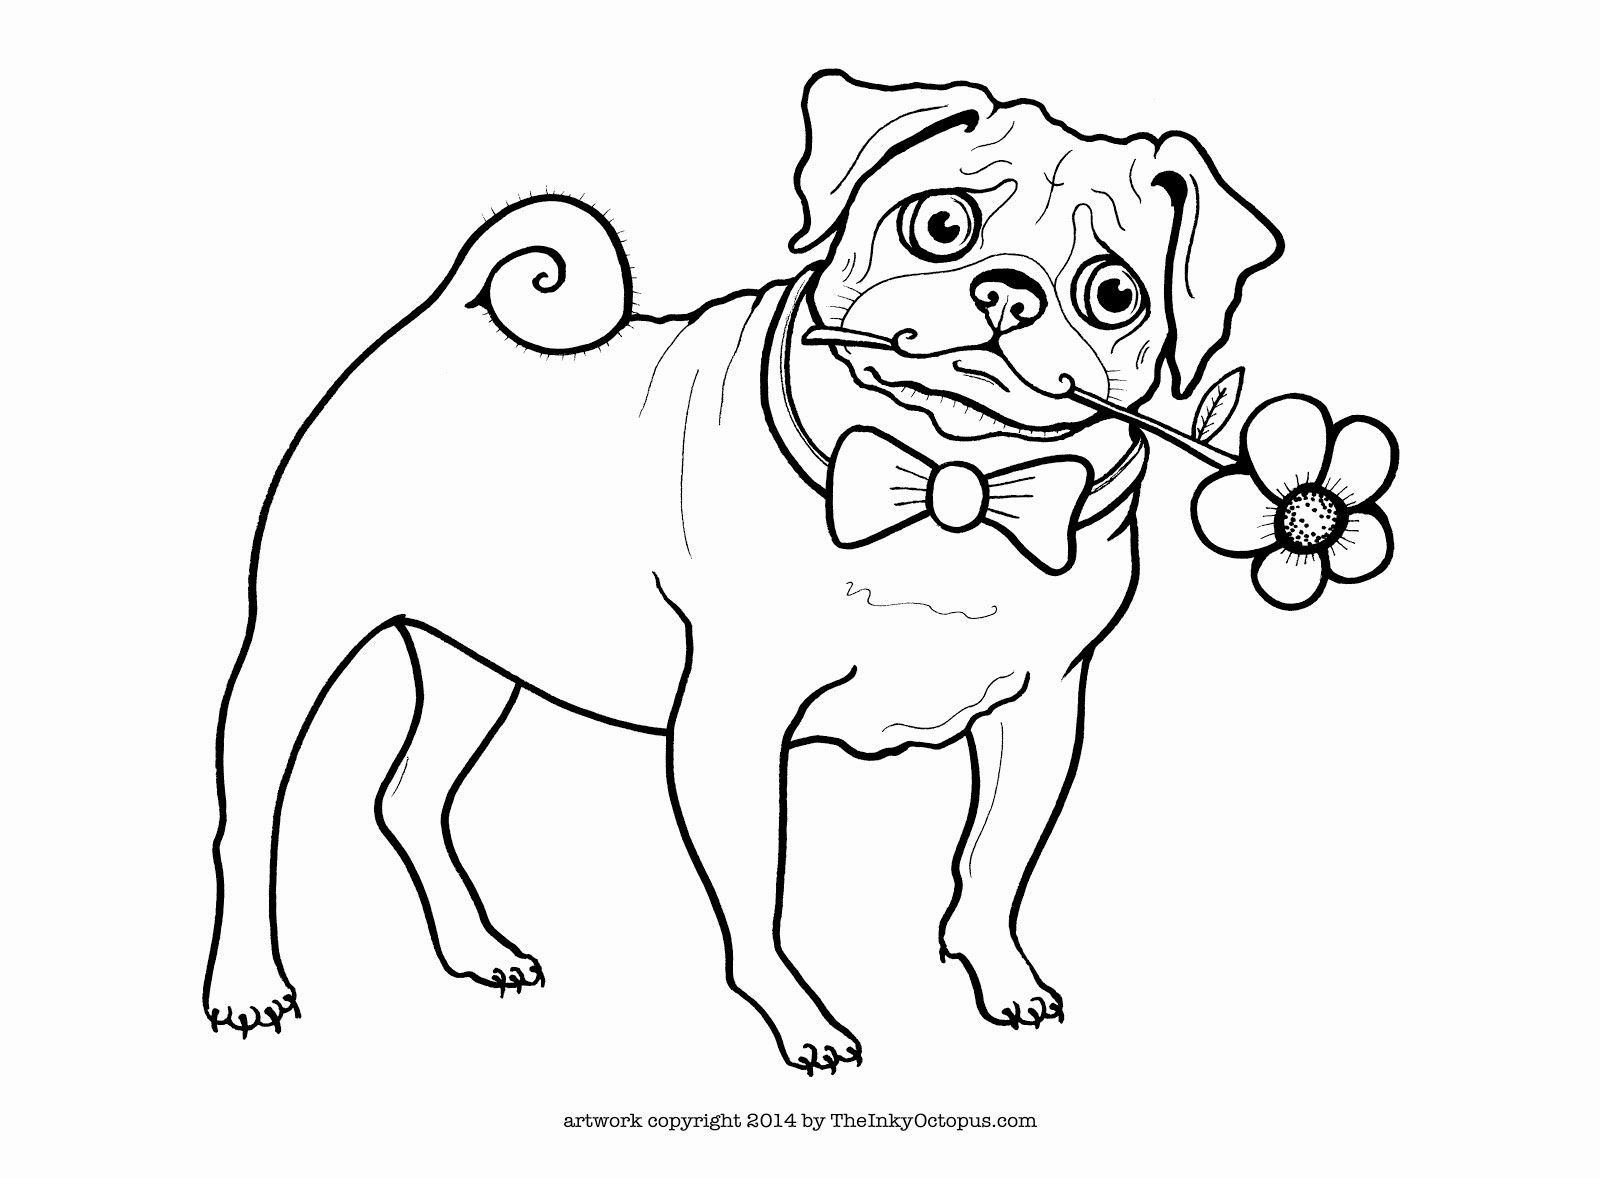 Doug The Pug Coloring Book Fresh Pug Coloring Pages Printable Coloring Home Puppy Coloring Pages Dog Coloring Page Dog Template